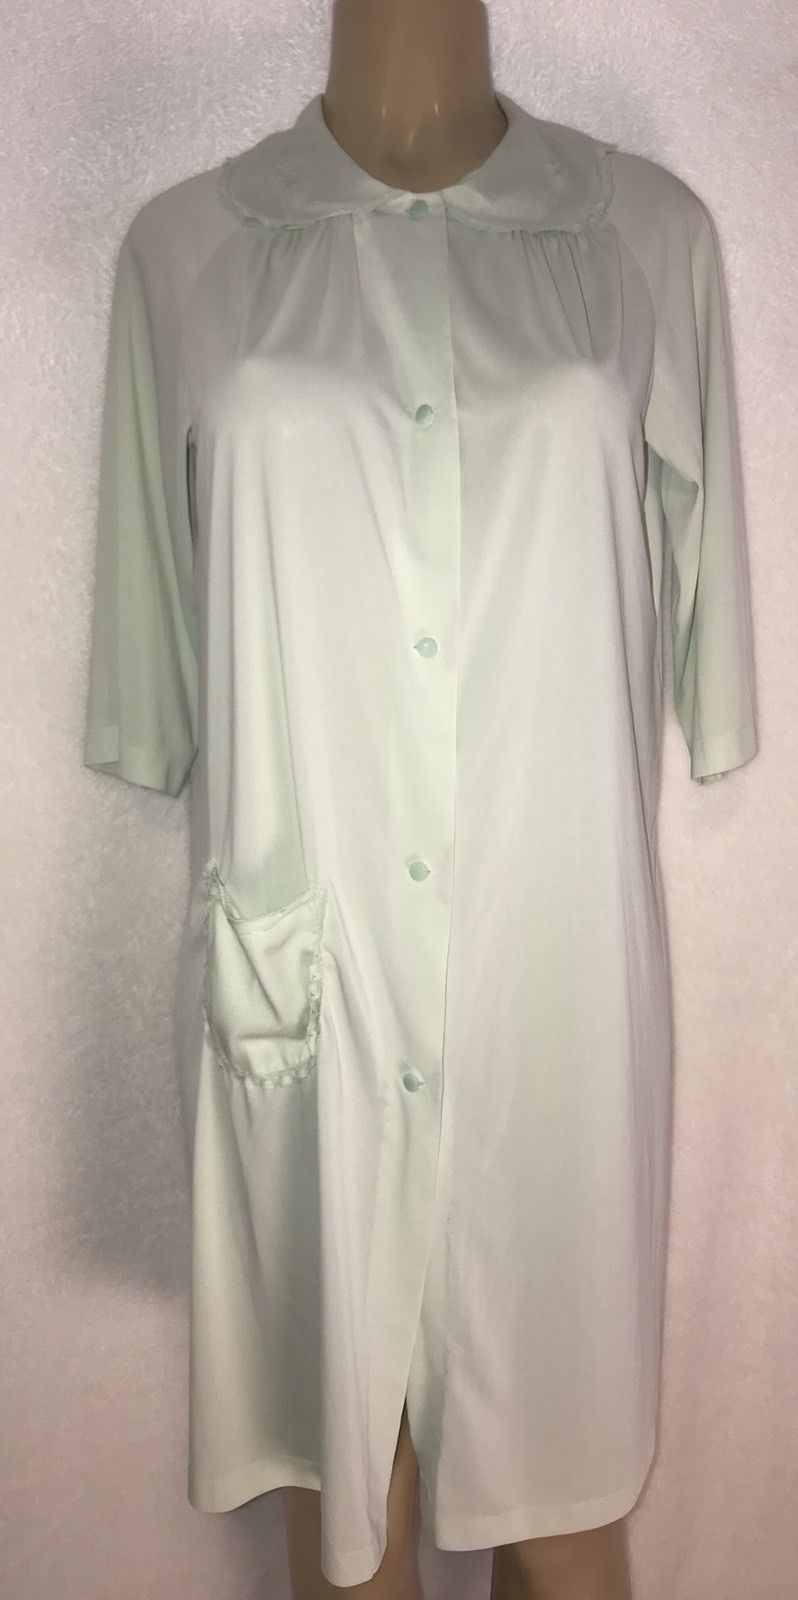 13887ac494 S l1600. S l1600. Previous. VTG Shadowline Mint Green Nylon Peignoir Robe  Nightgown Negligee lace Set S